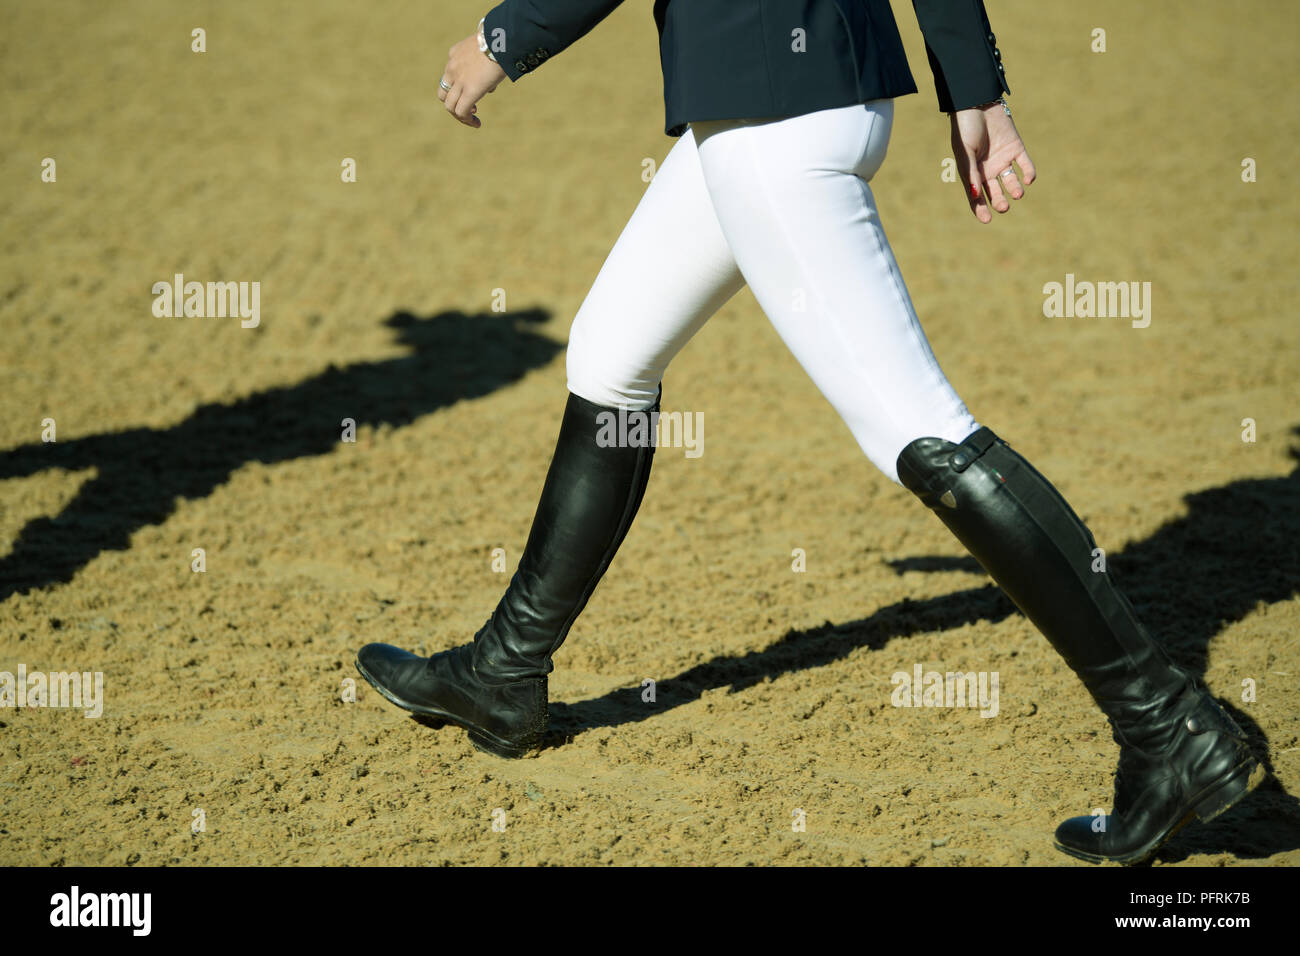 Close Up Detail Black Boots White Trousers Single Woman Competitor Walking Arena Horse Show Jumping Event People Stock Photo Alamy